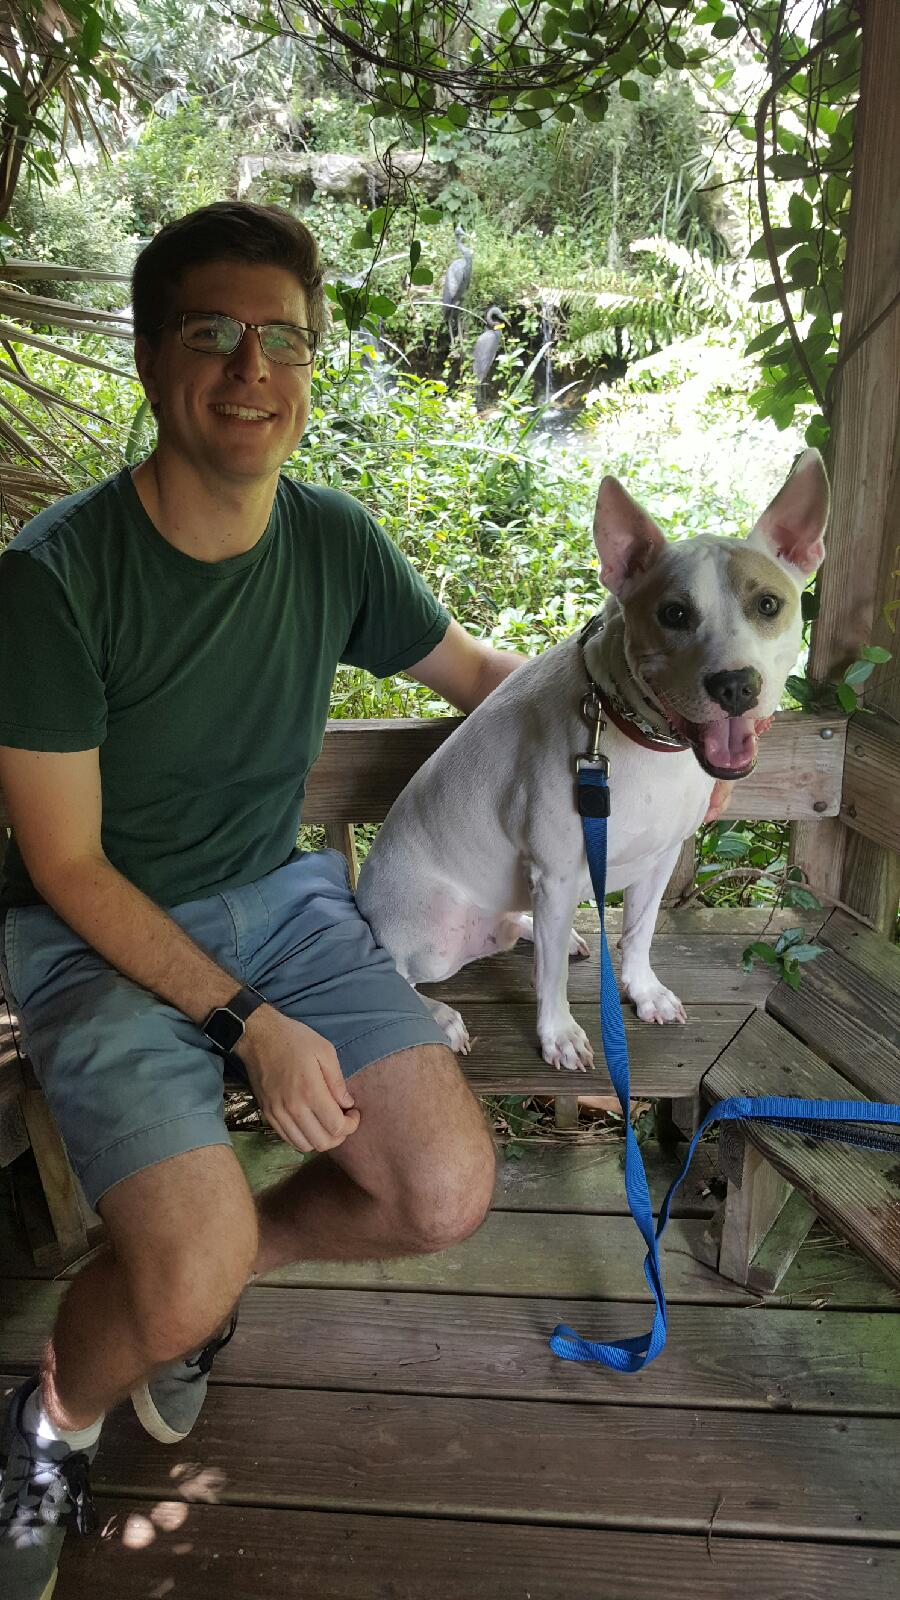 With Bradley at Kanapaha Botanical Gardens, Gainesville, Florida